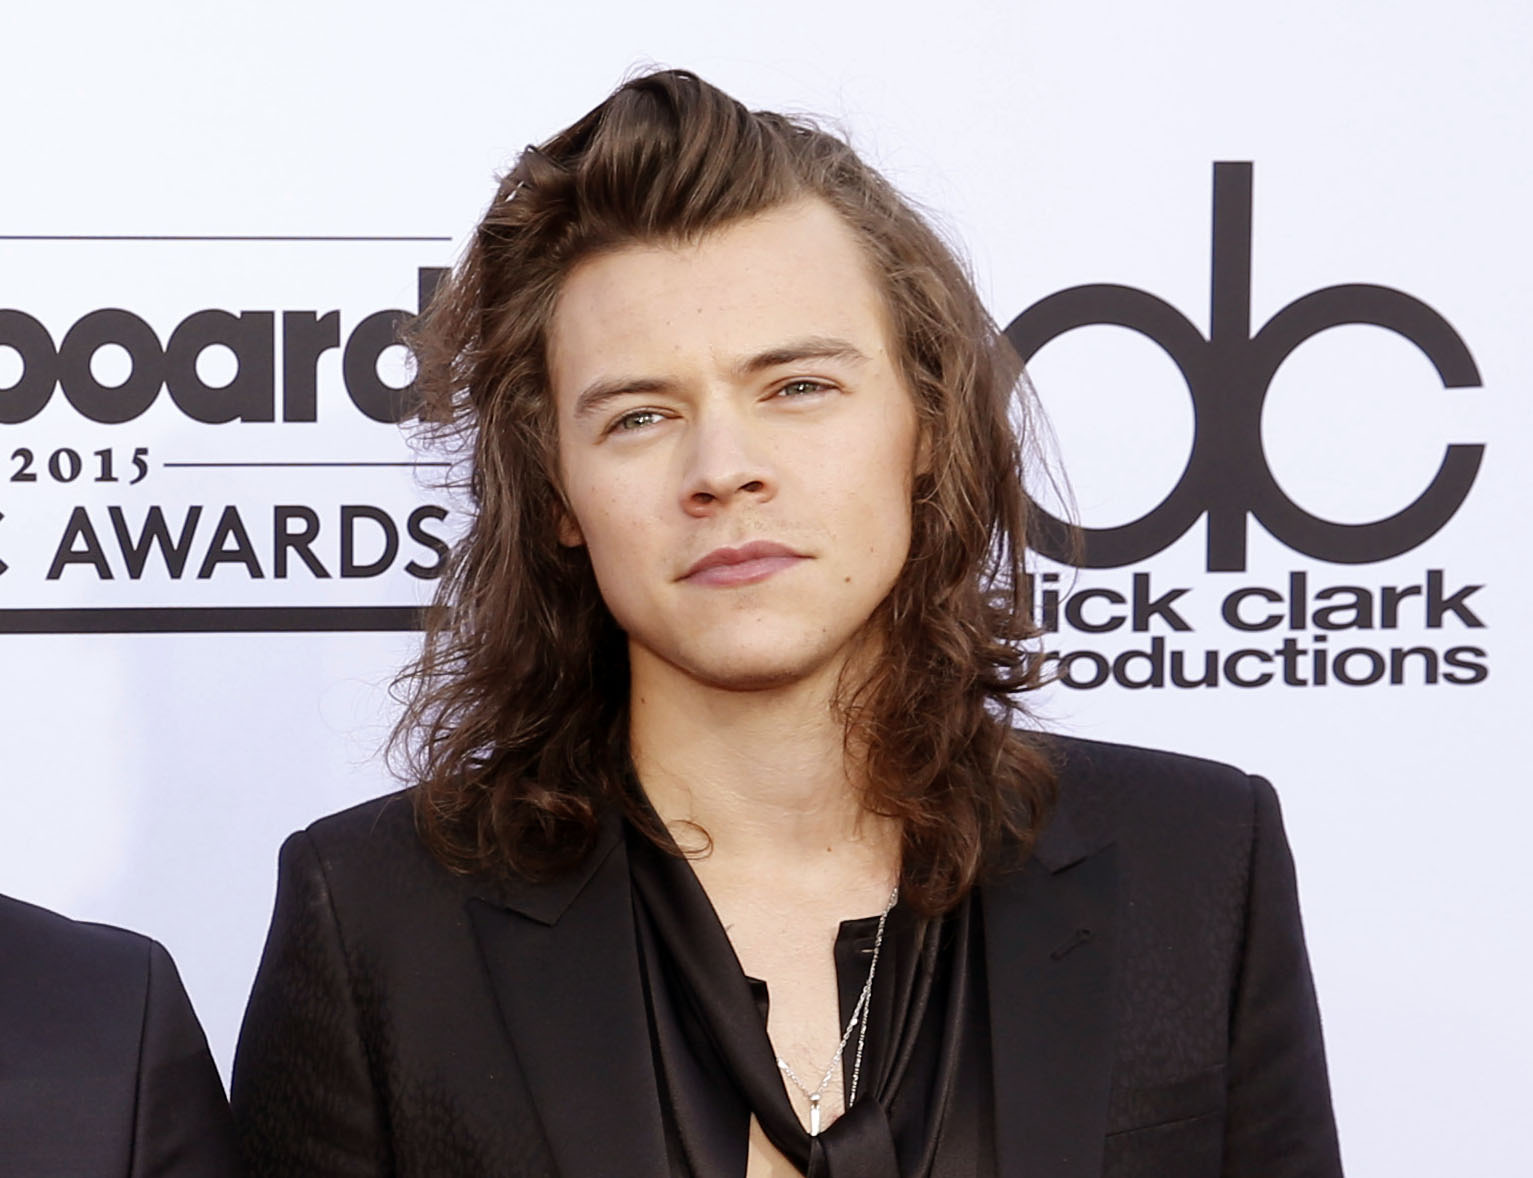 One Direction Fans Lost Their Sh*t Over Harry Styles New Look PA 23402188